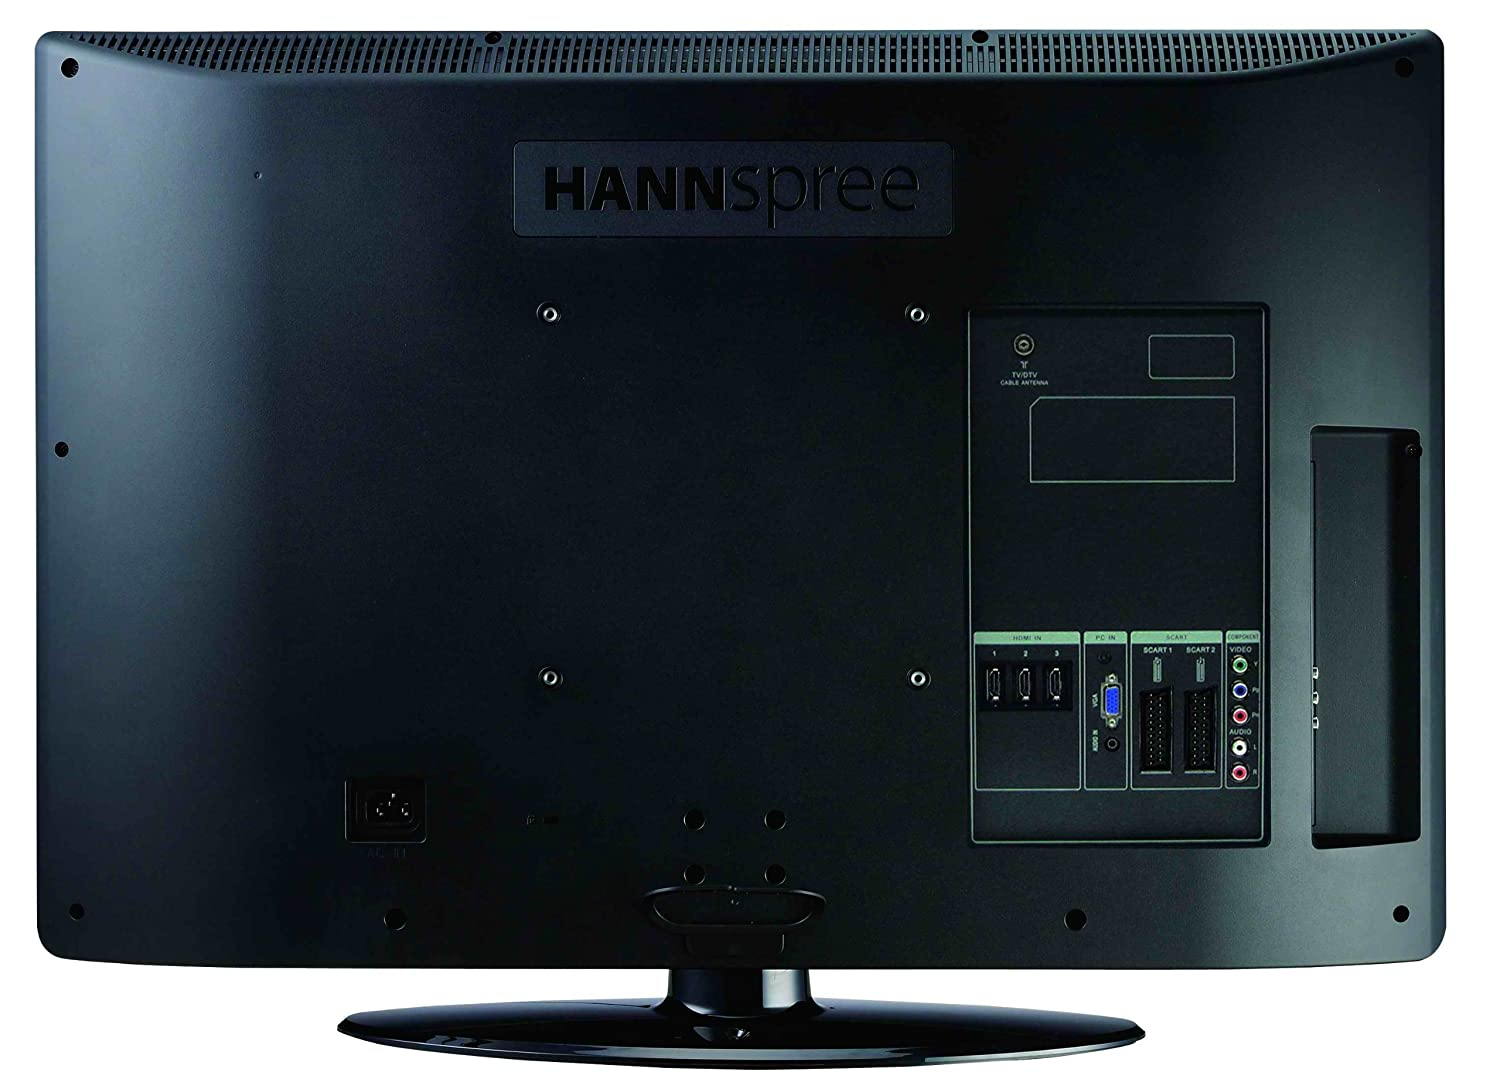 Hannspree ST321MNB 32-inch Widescreen Full HD 1080p LCD TV with Freeview  (Discontinued by Manufacturer): Amazon.co.uk: TV